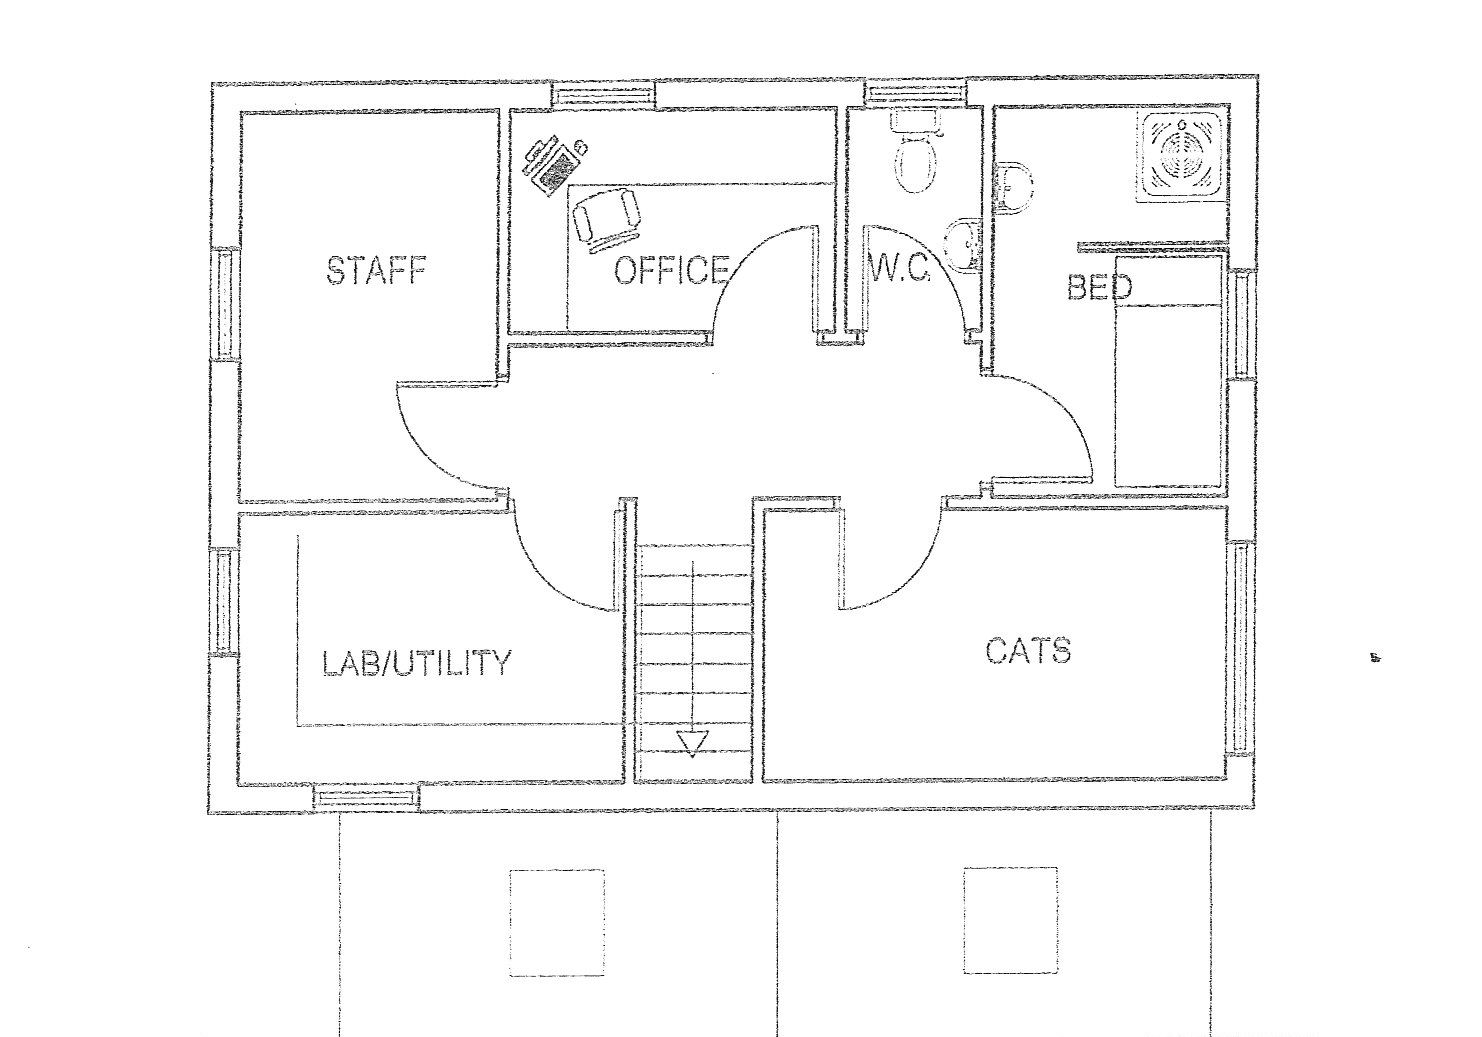 Exclusivemaidservice together with 463448617873577688 moreover Crazy Home Modifications For Devoted Pet Owners as well Cat Scratching Post in addition Sater Courtyard Home Plans. on pet friendly house plans